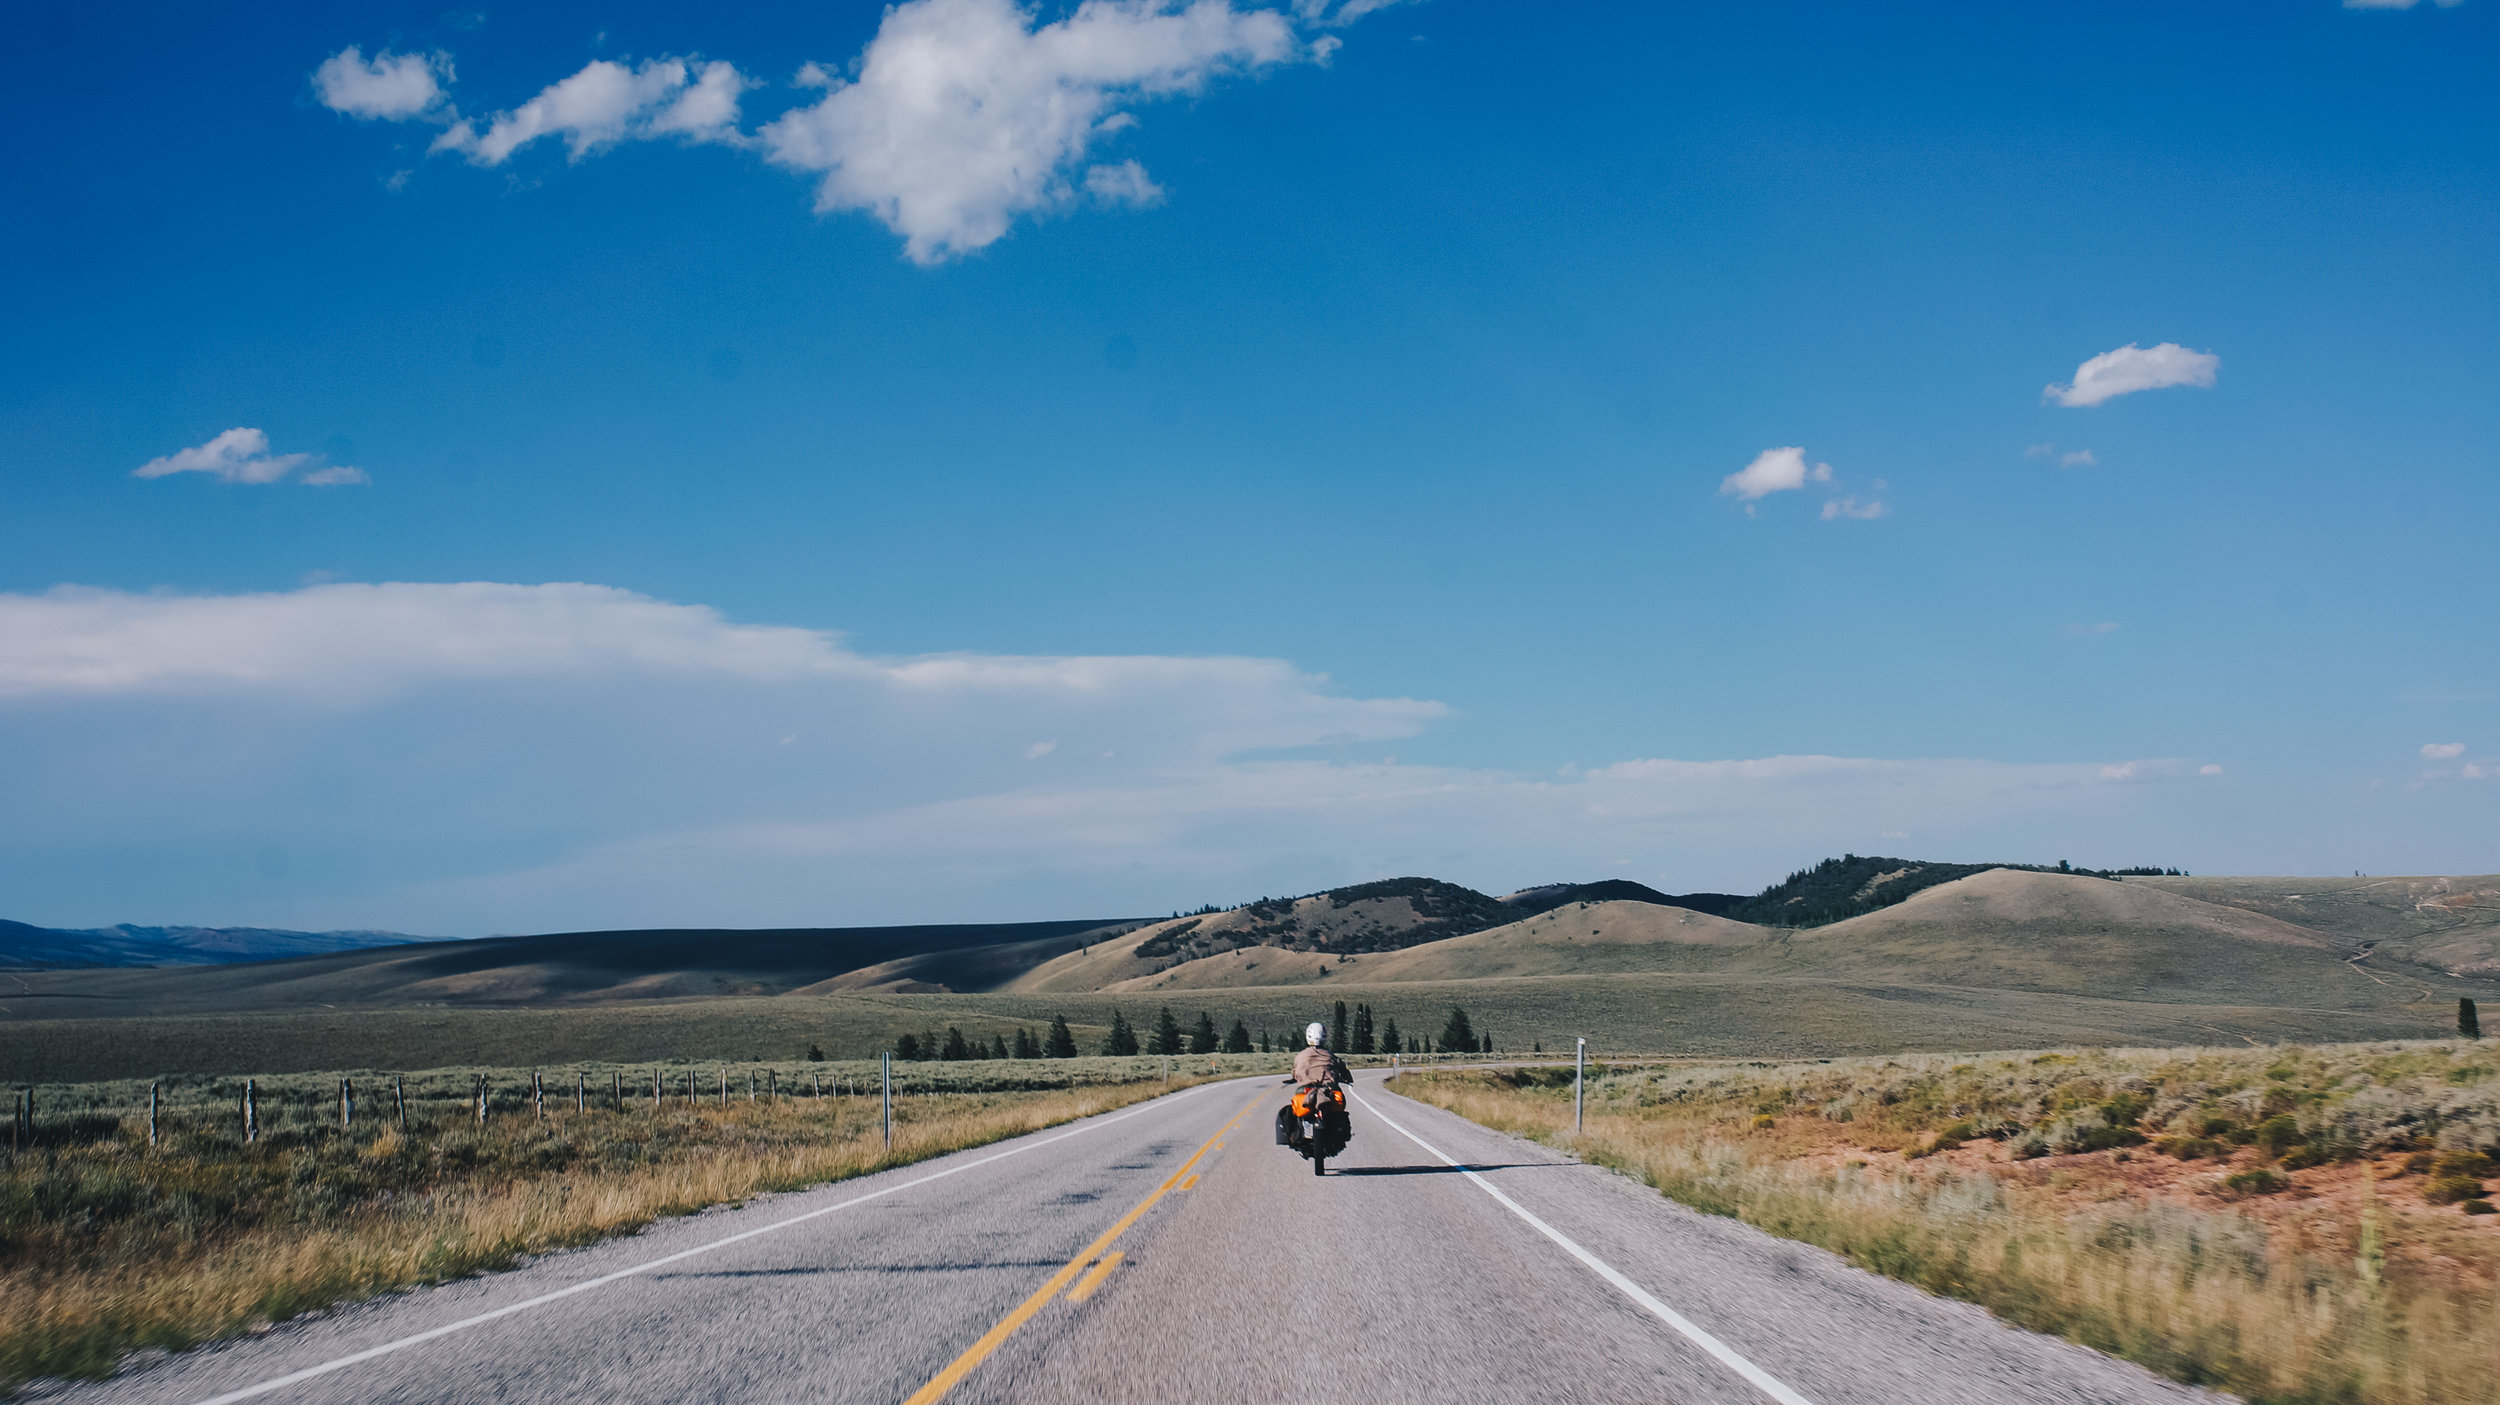 On the road towards Bear Lake, ID.